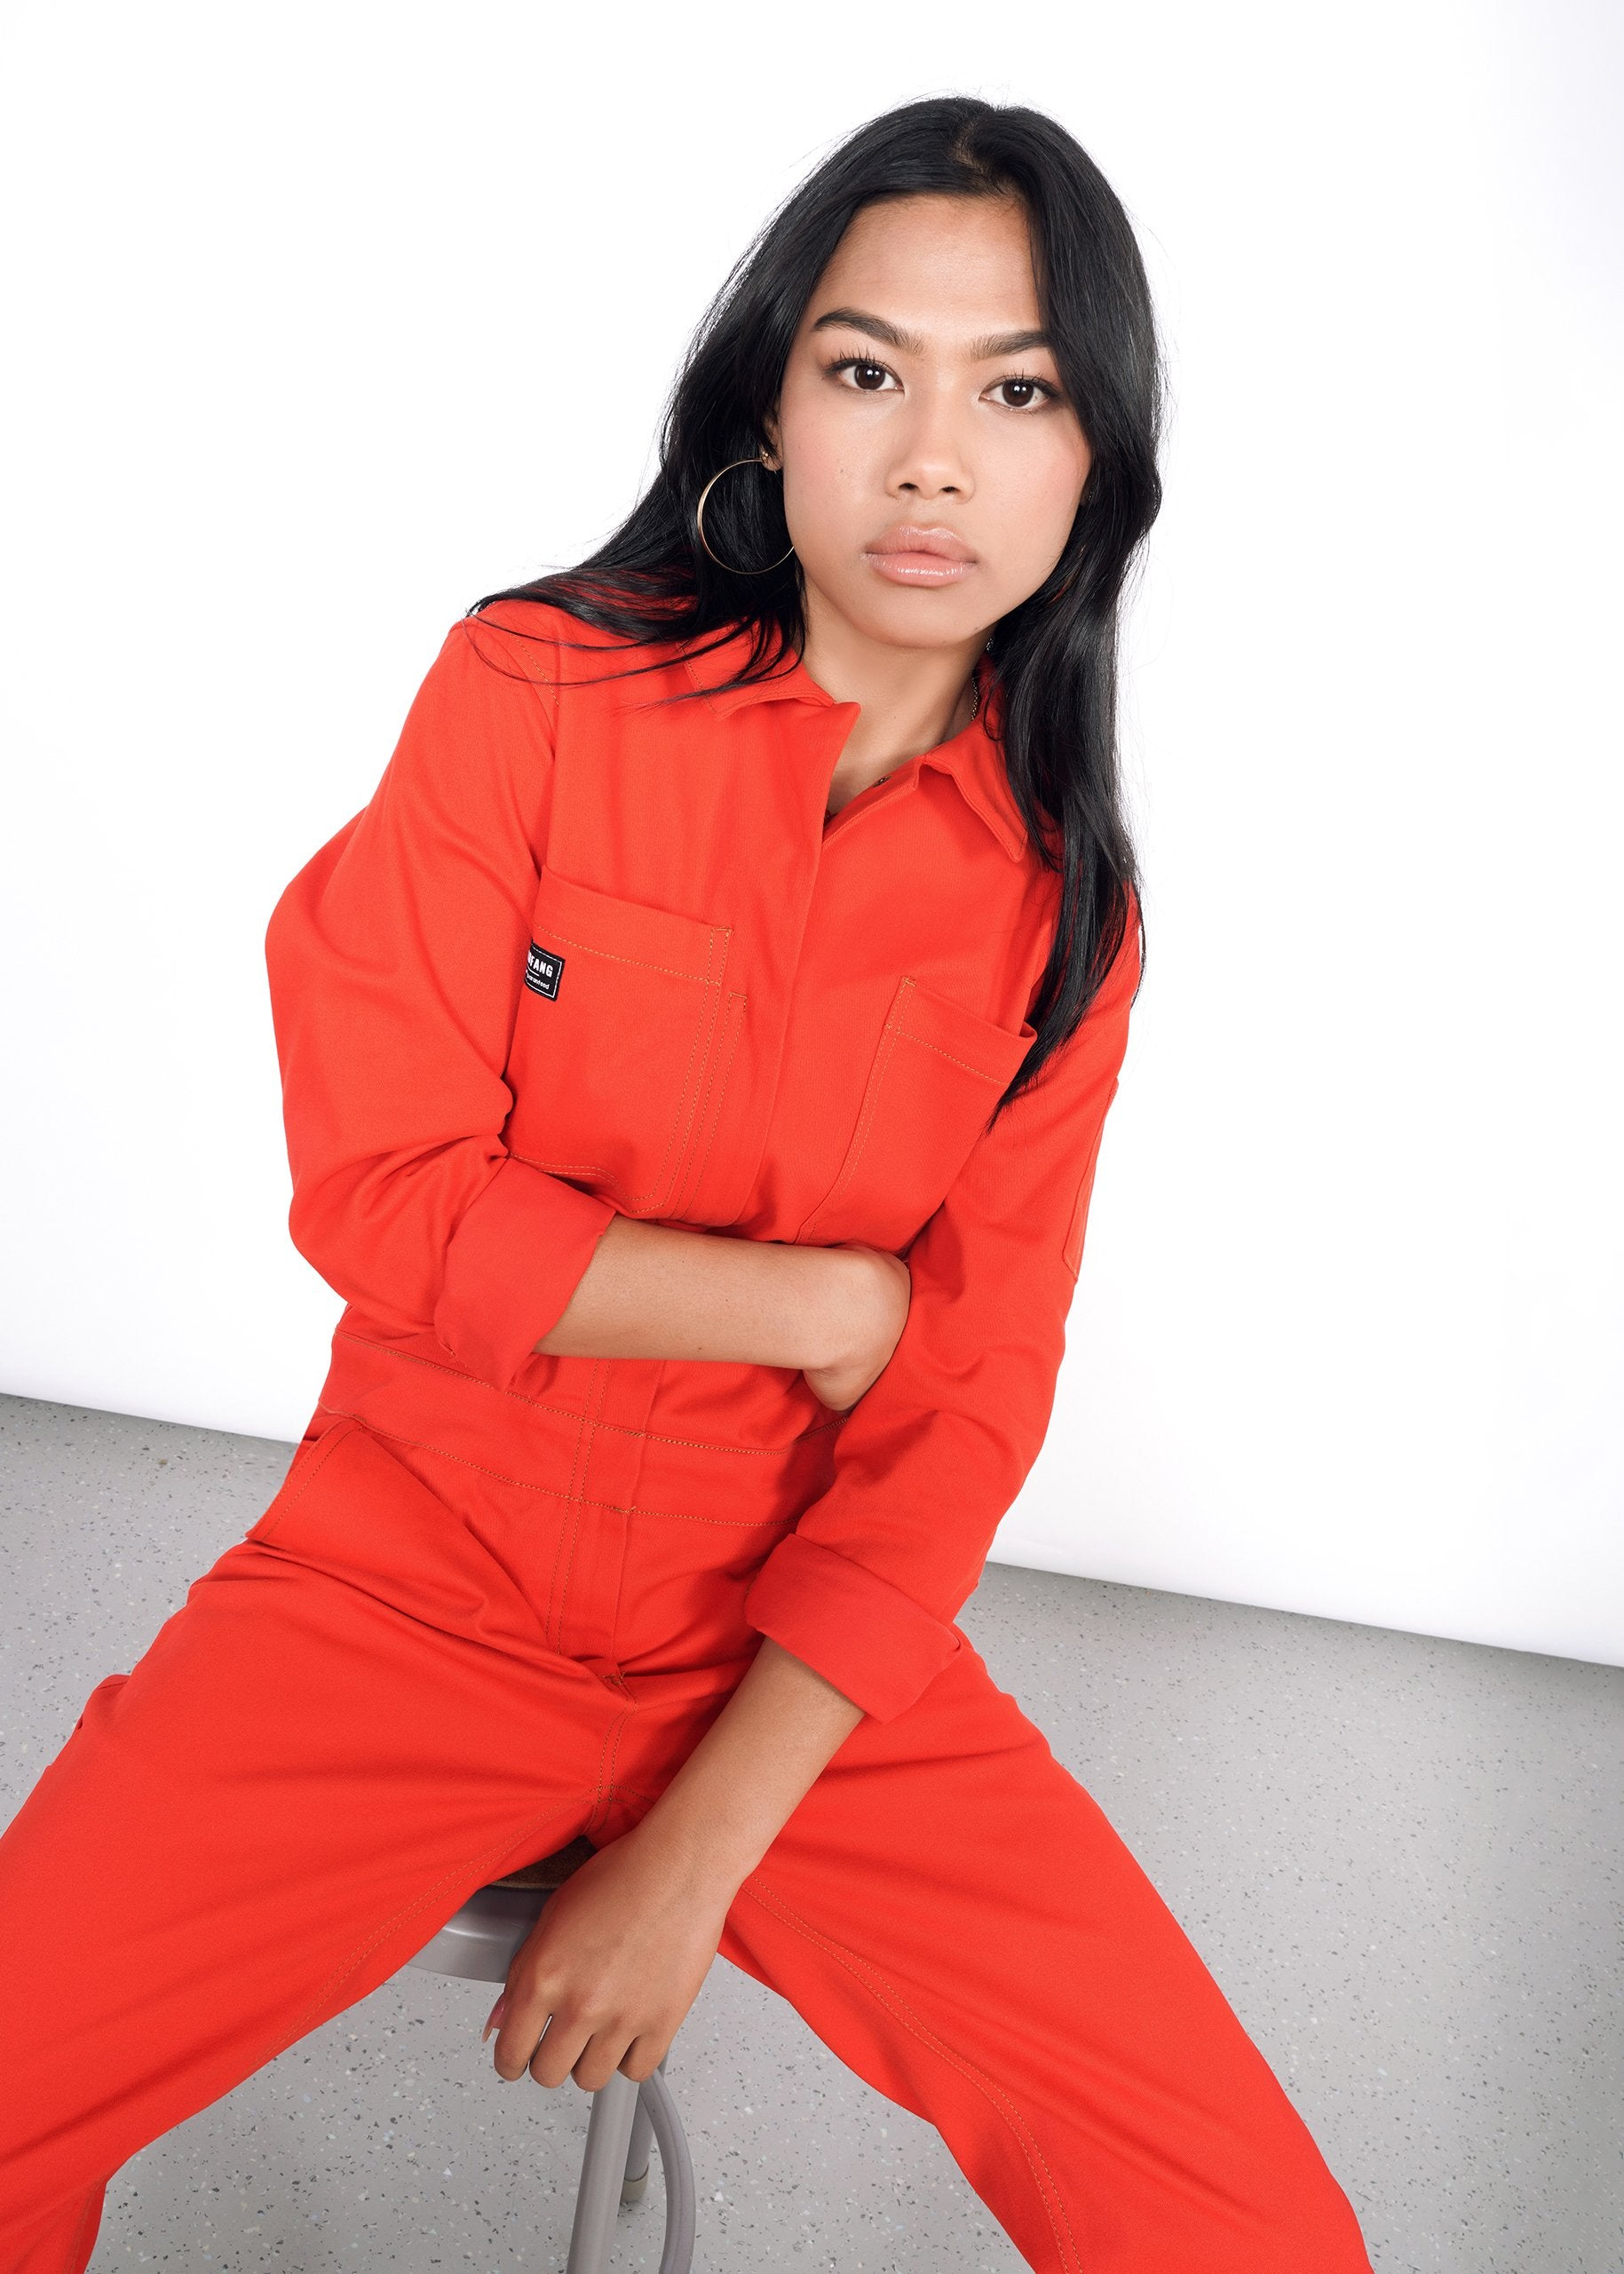 Image of model sitting on stool wearing bright red long sleeve coveralls